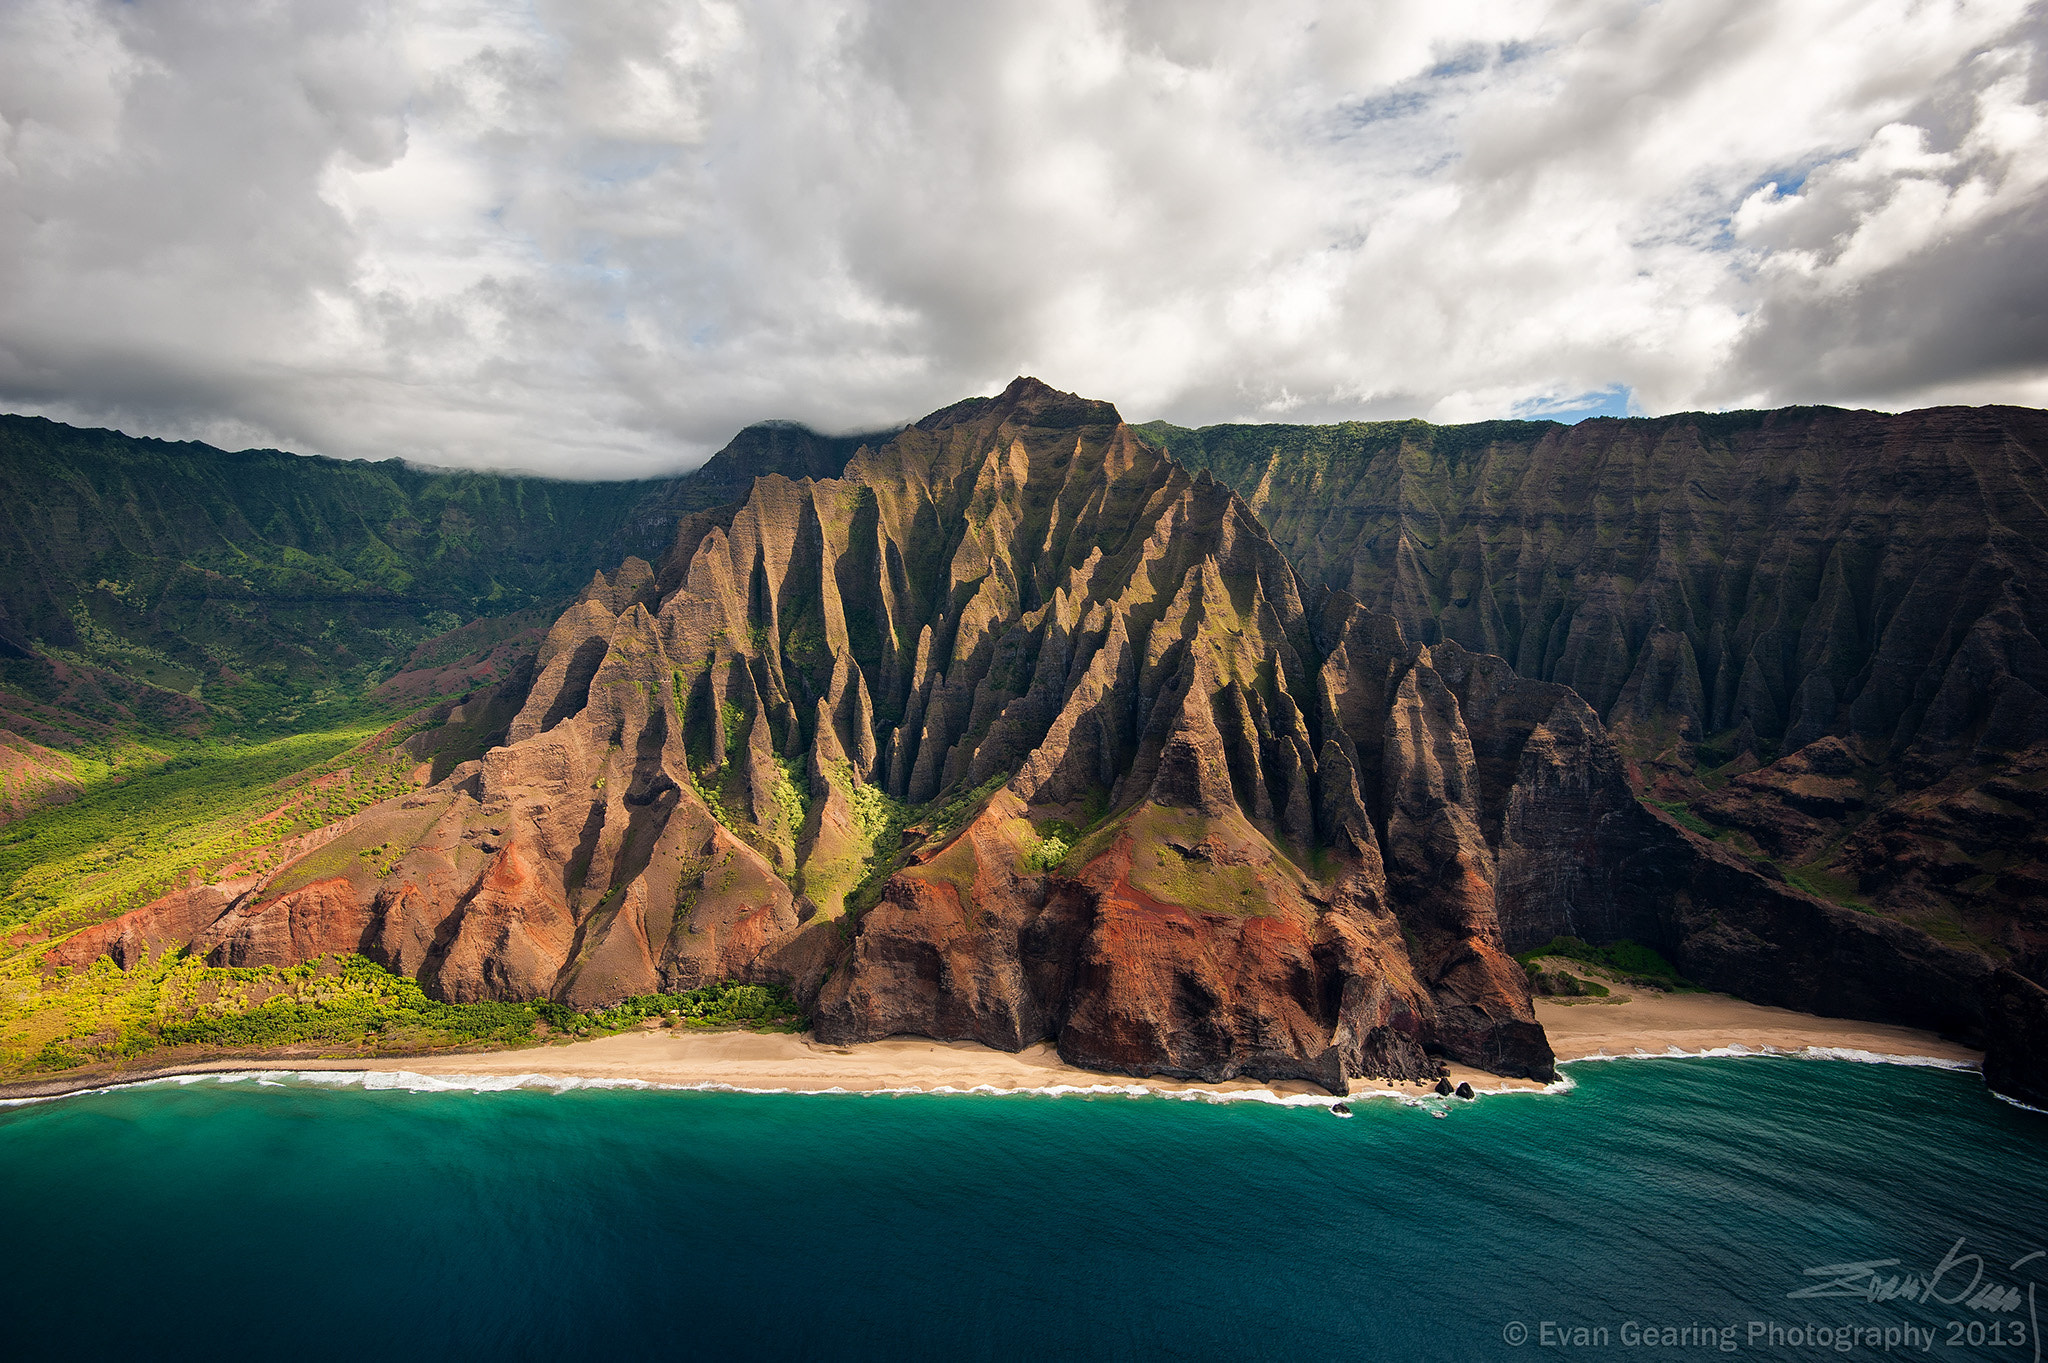 Photograph The Cathedrals of the Napali Coast, Kauai, Hawaii by Evan Gearing on 500px